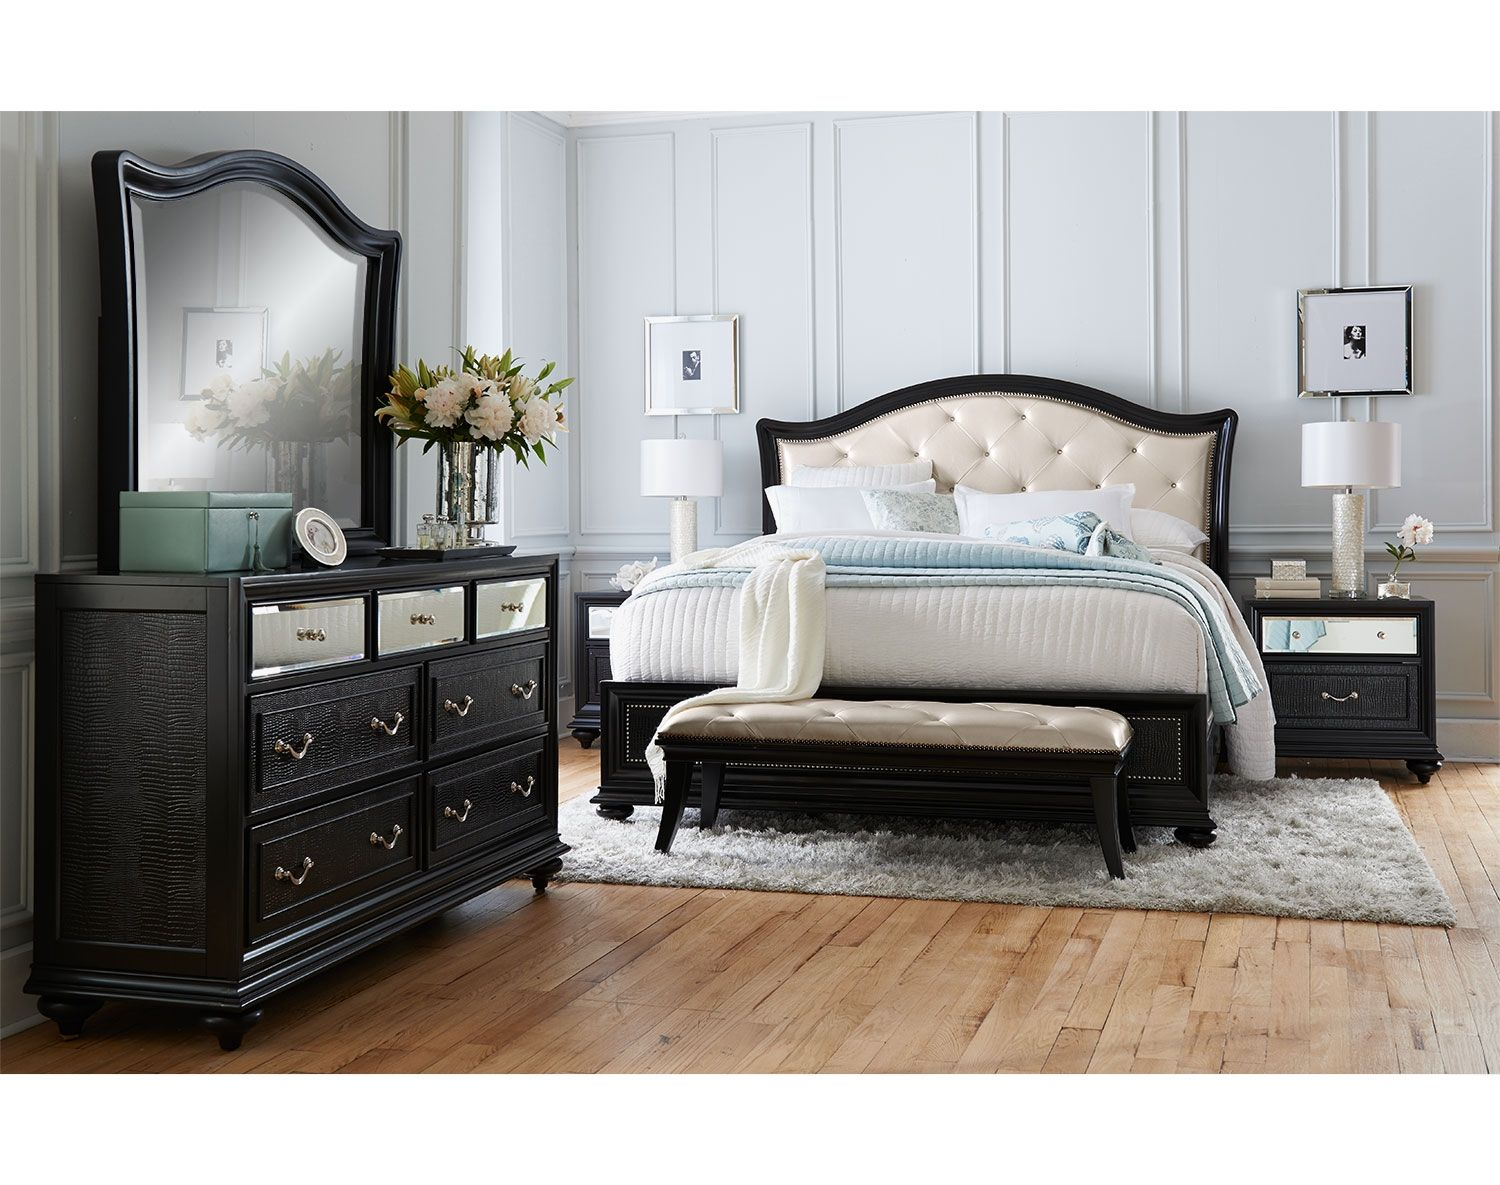 value city bedroom sets extraordinary the marilyn 17687 | 25de4b731e3d4eed4c26c0896951655d